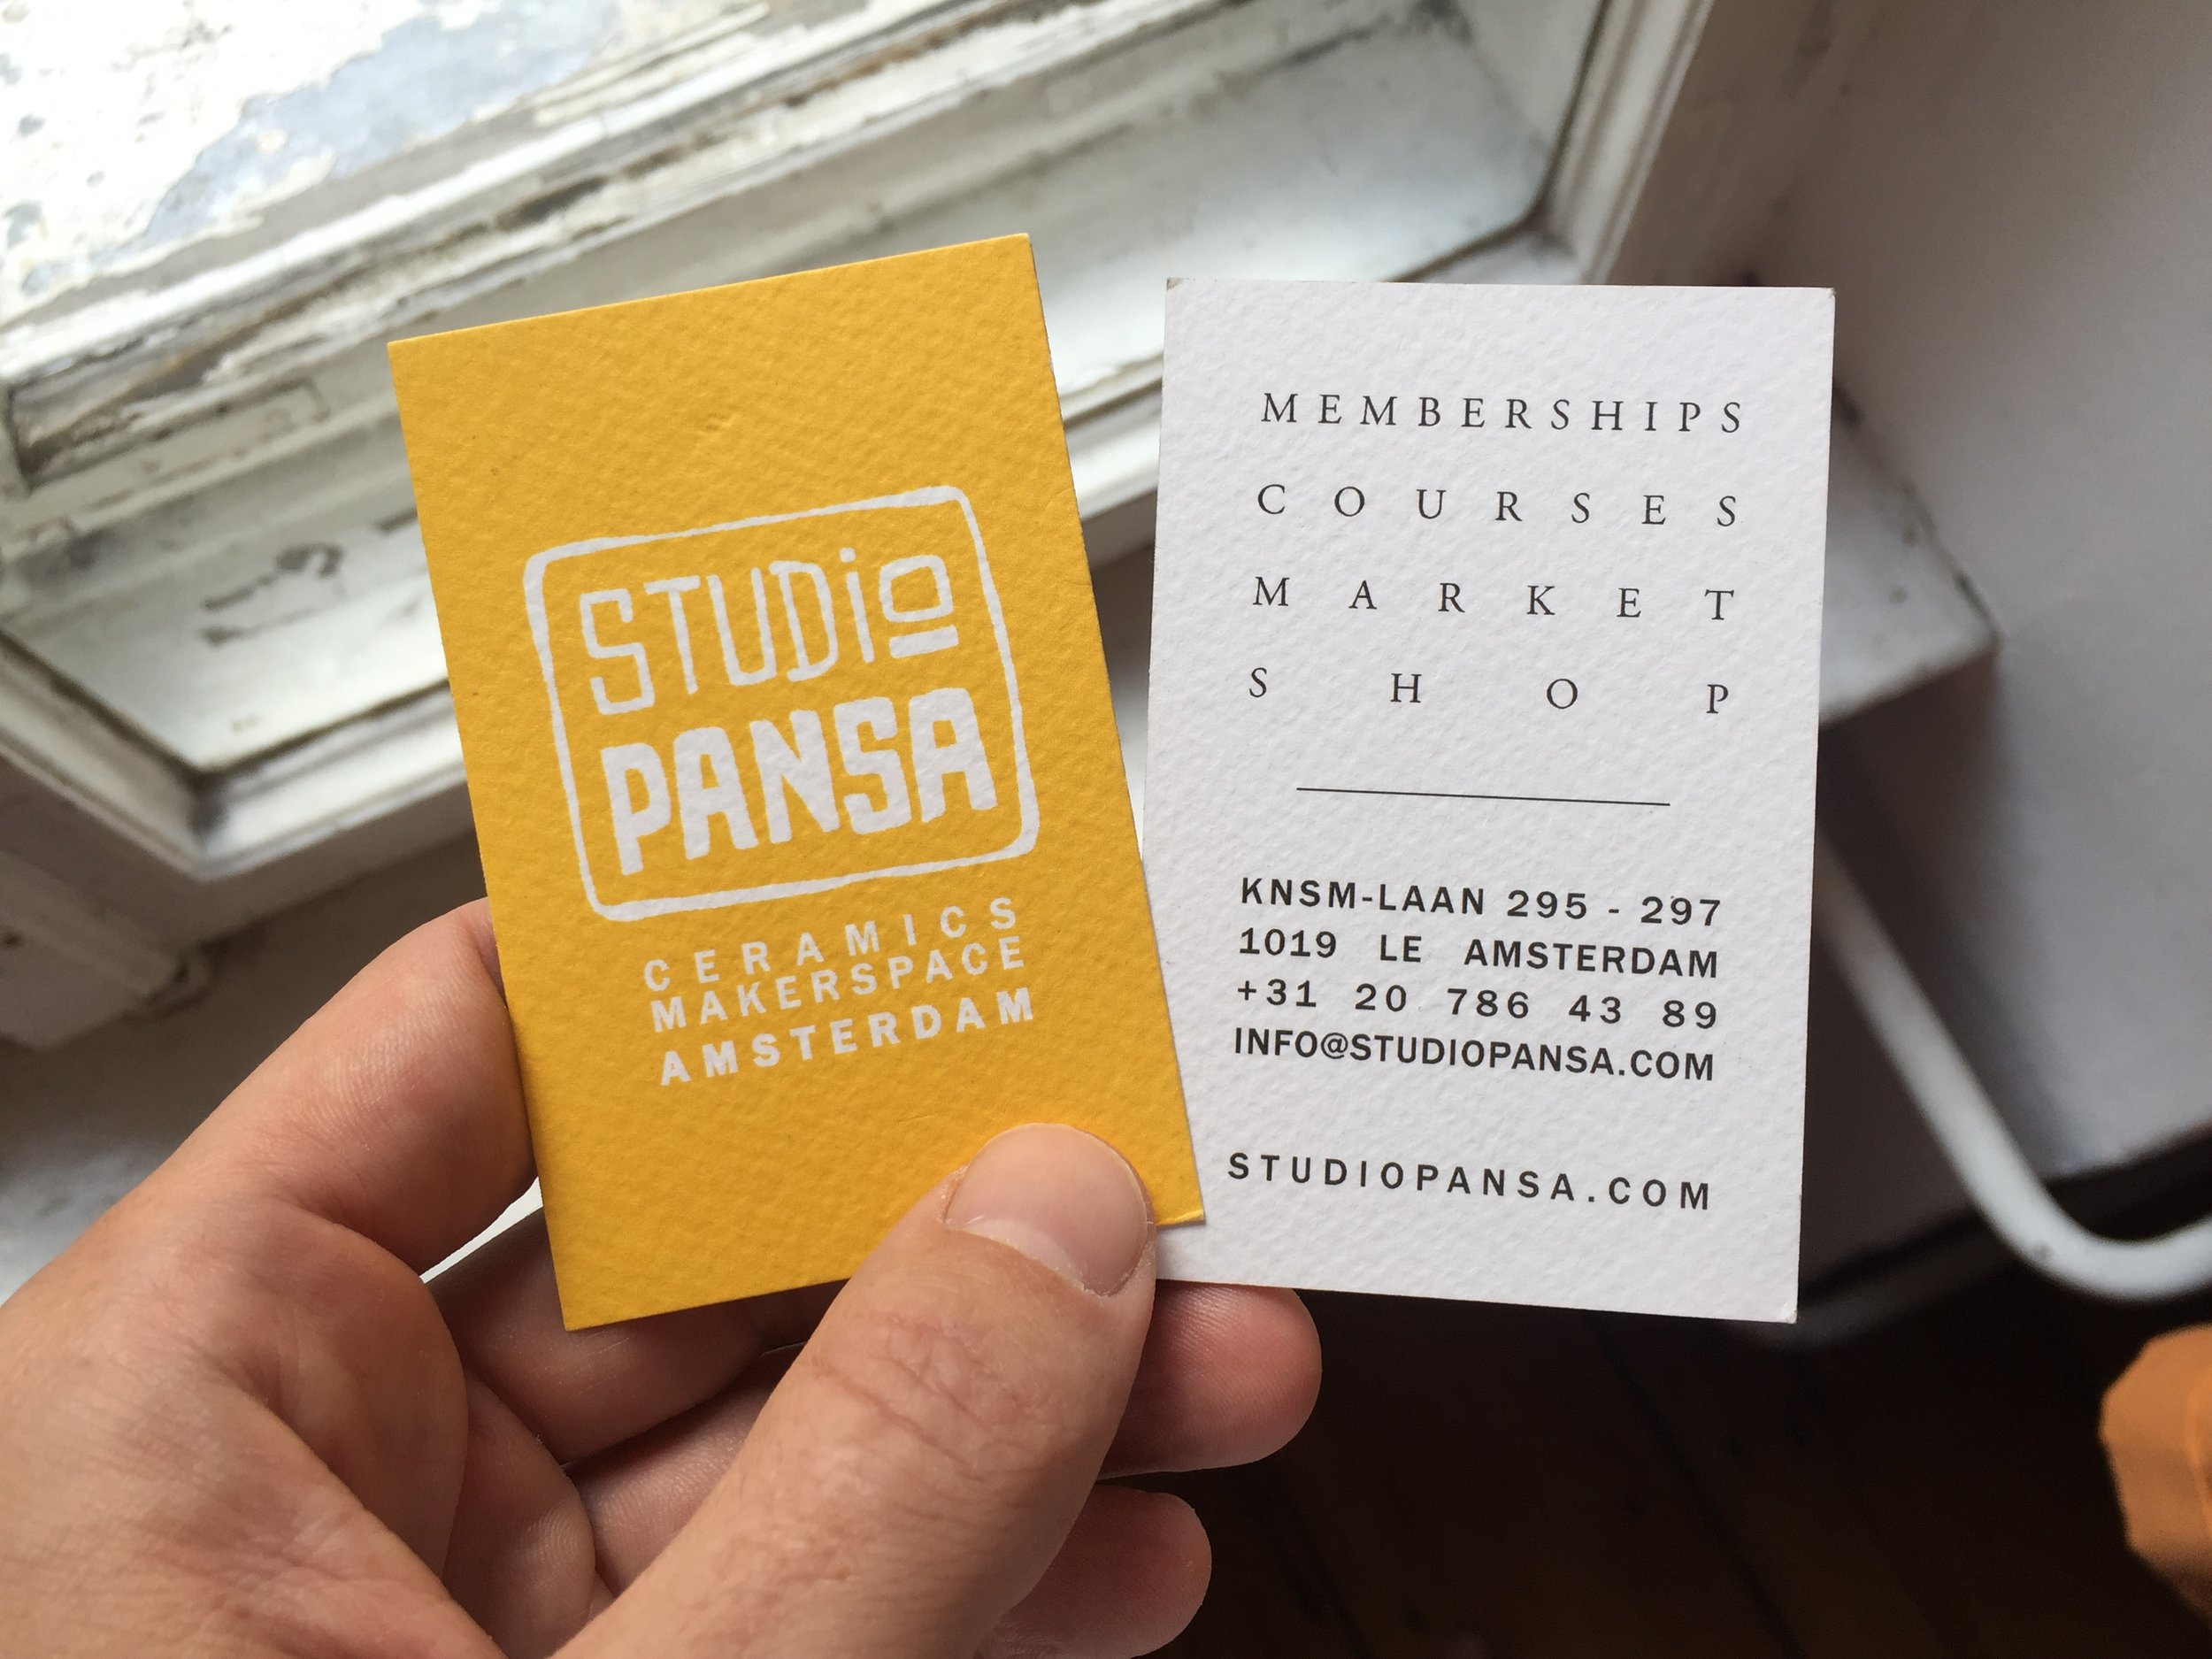 Business cards for Studio Pansa (2019)